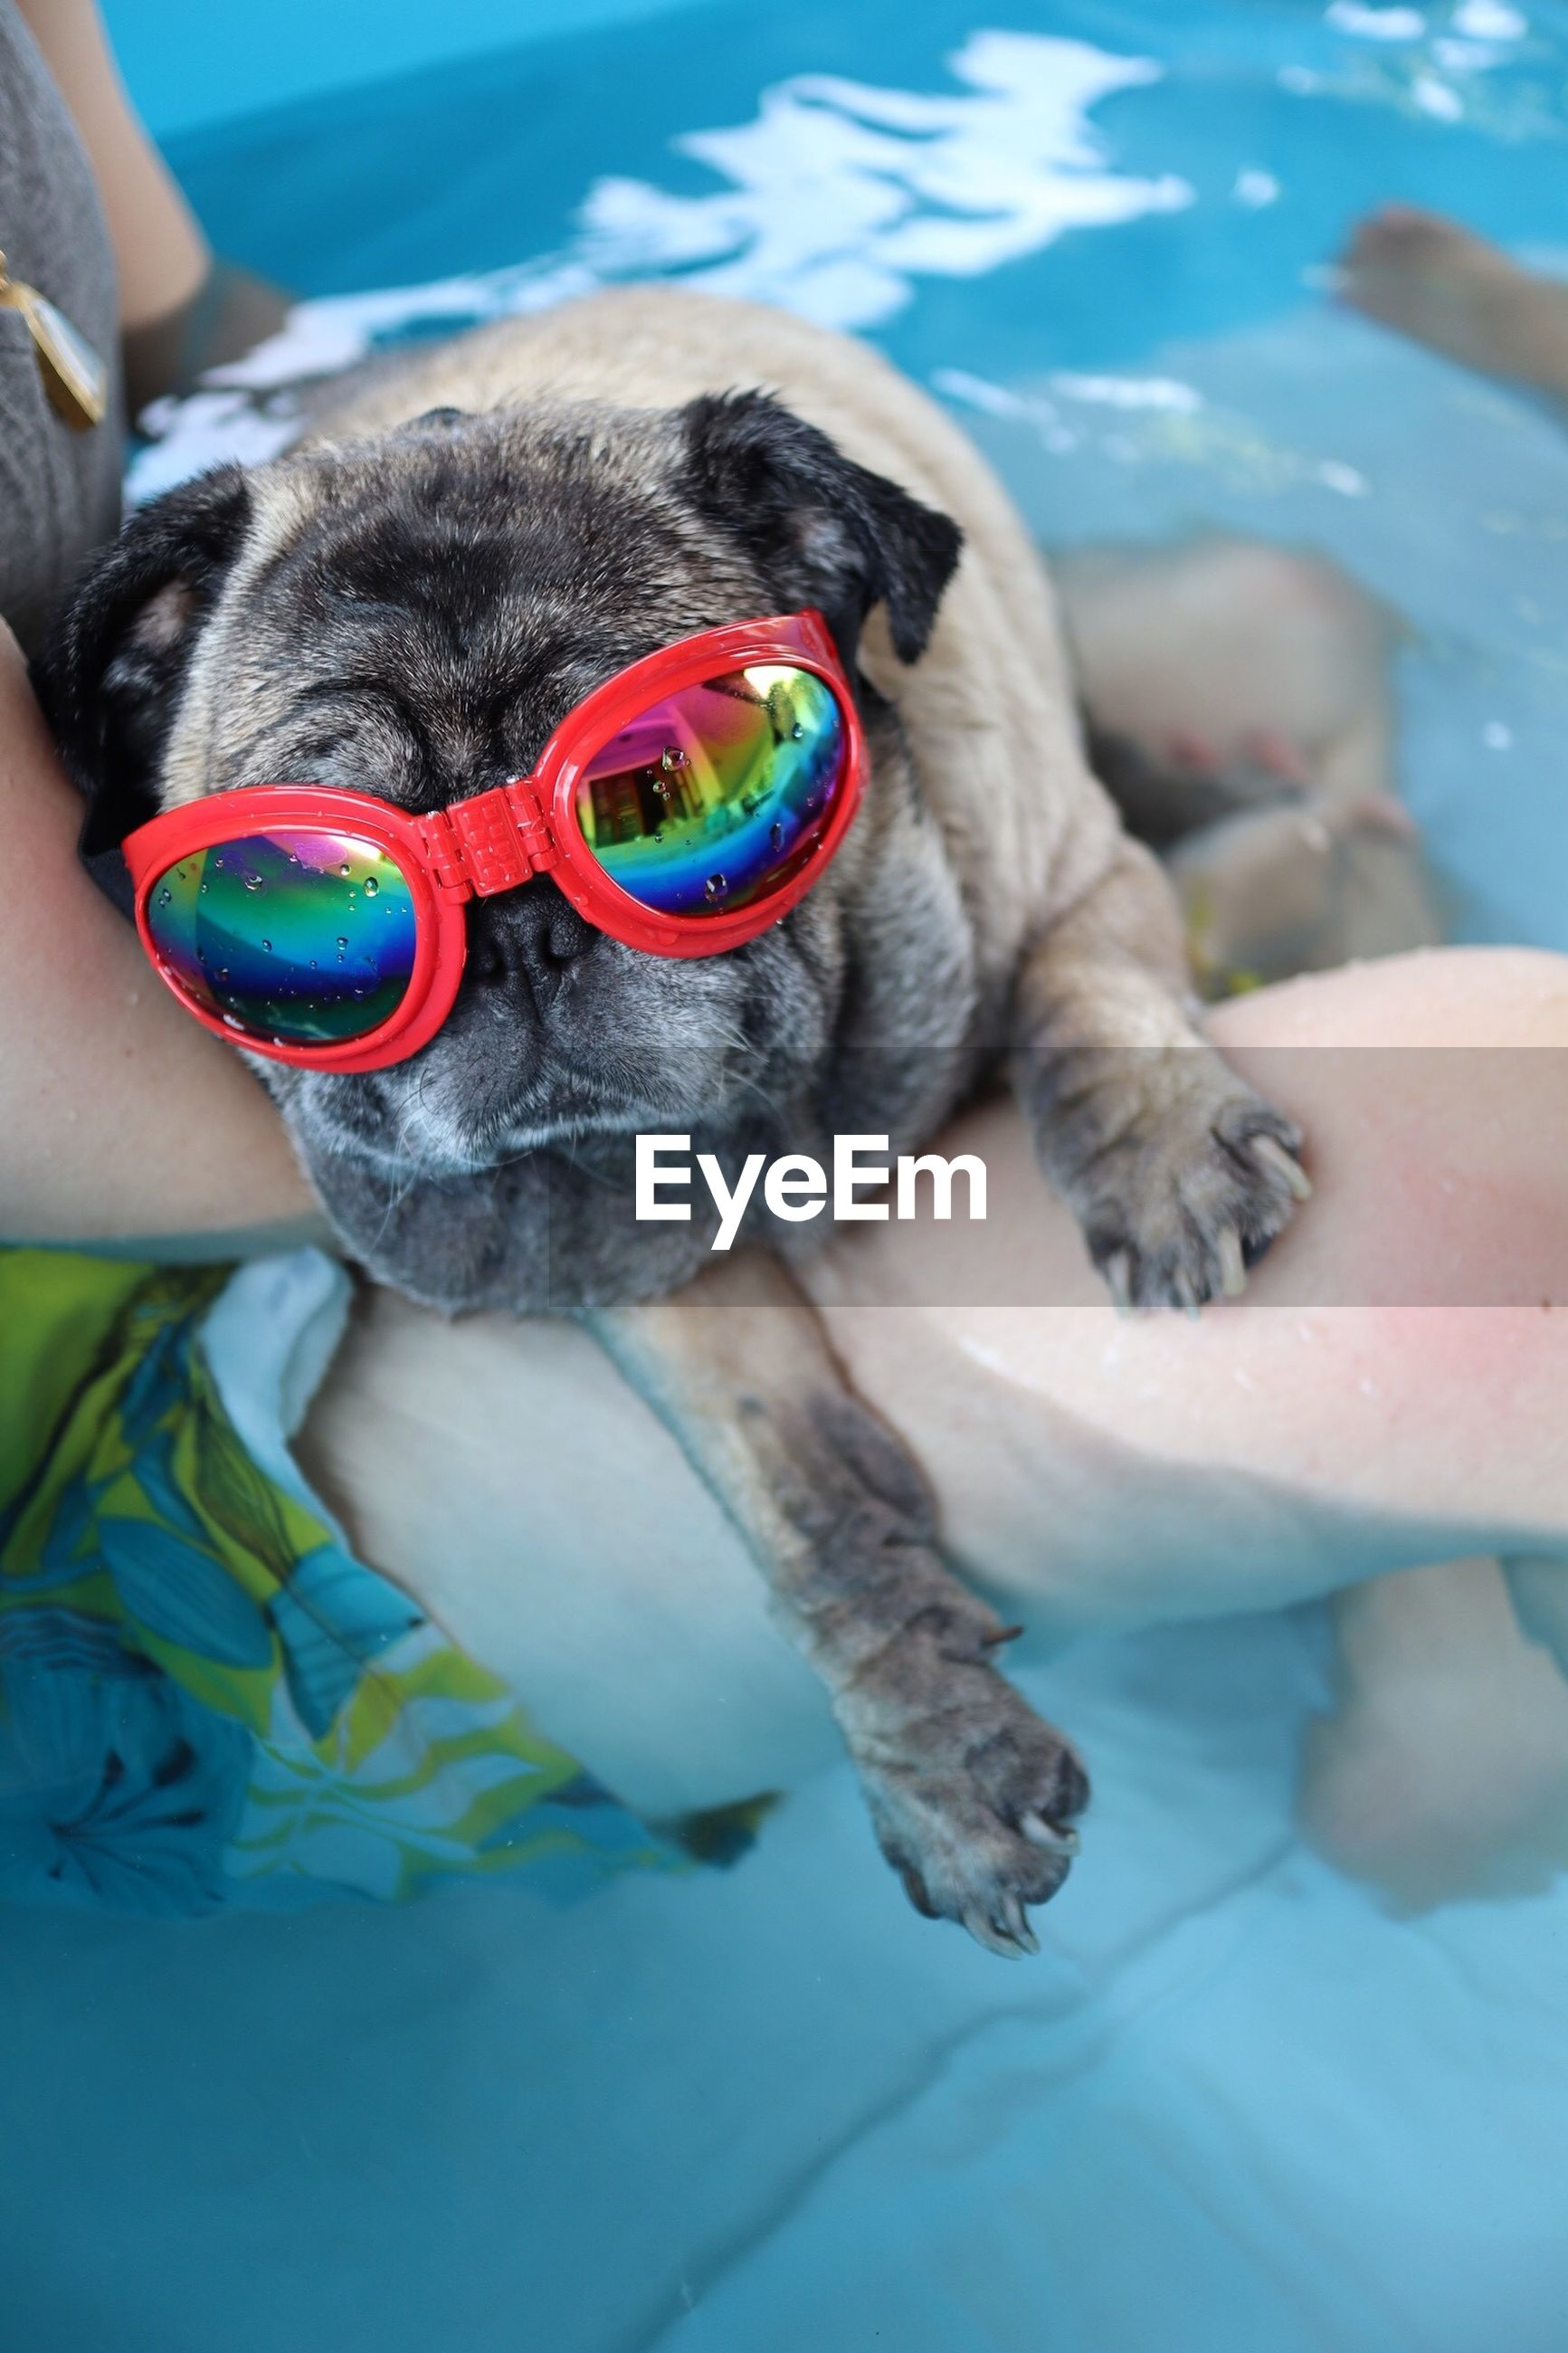 MIDSECTION OF PERSON HOLDING DOG WITH SWIMMING POOL